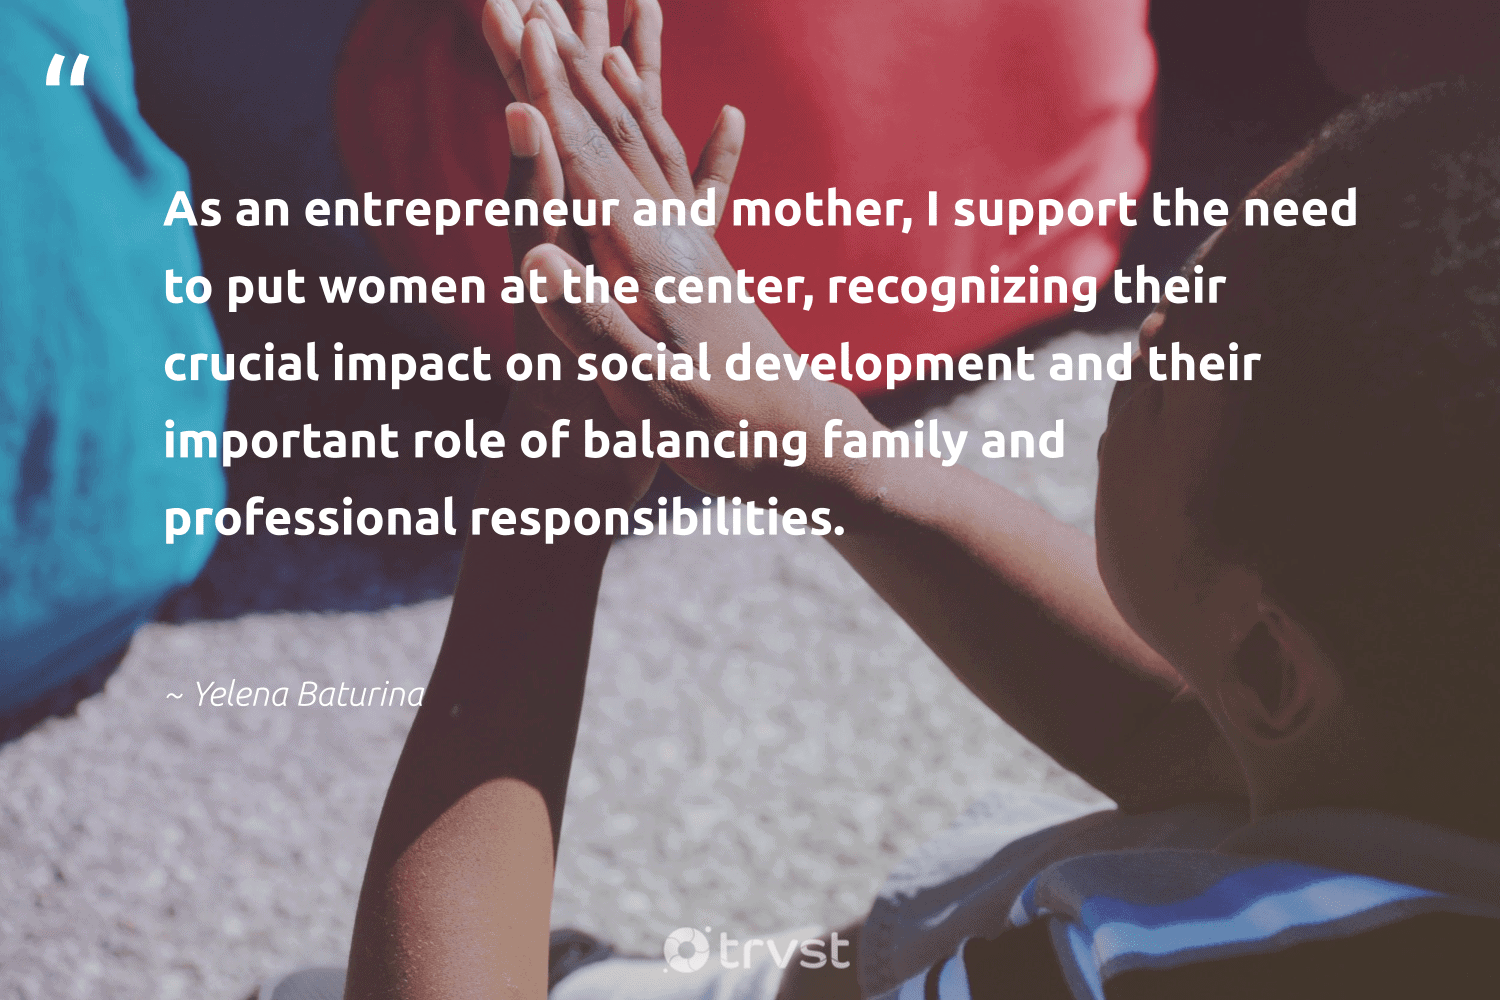 """""""As an entrepreneur and mother, I support the need to put women at the center, recognizing their crucial impact on social development and their important role of balancing family and professional responsibilities.""""  - Yelena Baturina #trvst #quotes #impact #women #family #development #entrepreneur #entrepreneurlife #weareallone #futureofwork #dosomething #entrepreneurship"""